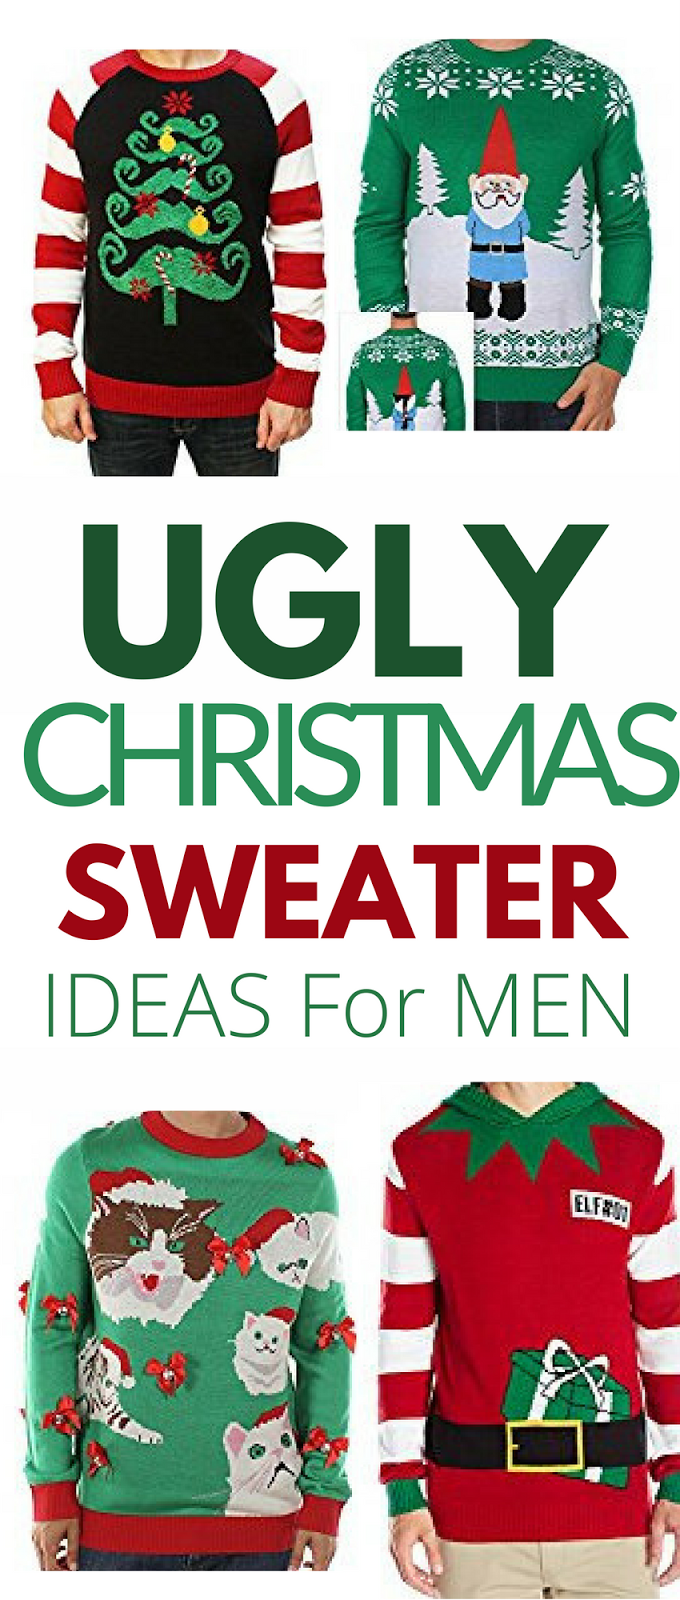 mens ugly christmas sweaters, sweater, sweater party, 17 Ugly Christmas Sweater Ideas For Men - Thirty Eighth Street